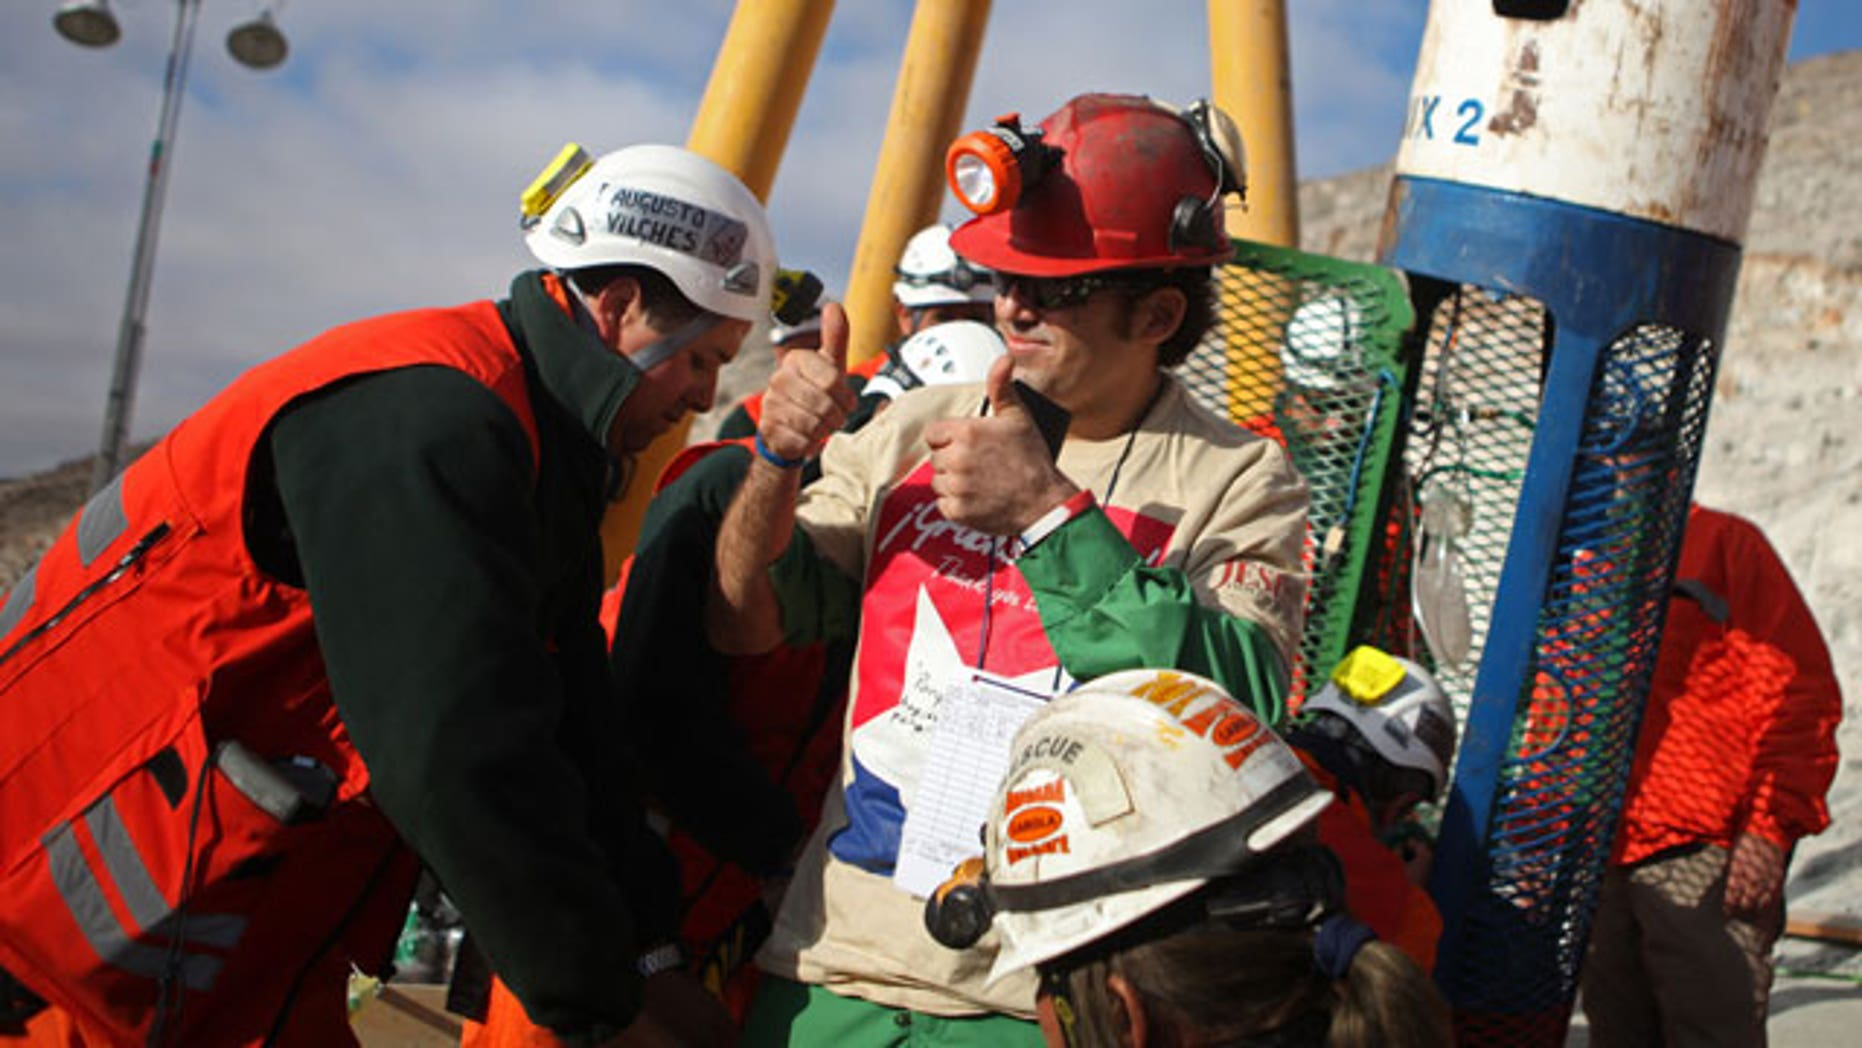 In this photo released by the Chilean government, miner Alex Vega gestures after being rescued from the collapsed San Jose gold and copper mine where he had been trapped with 32 other miners for over two months near Copiapo, Chile, Wednesday Oct. 13, 2010.